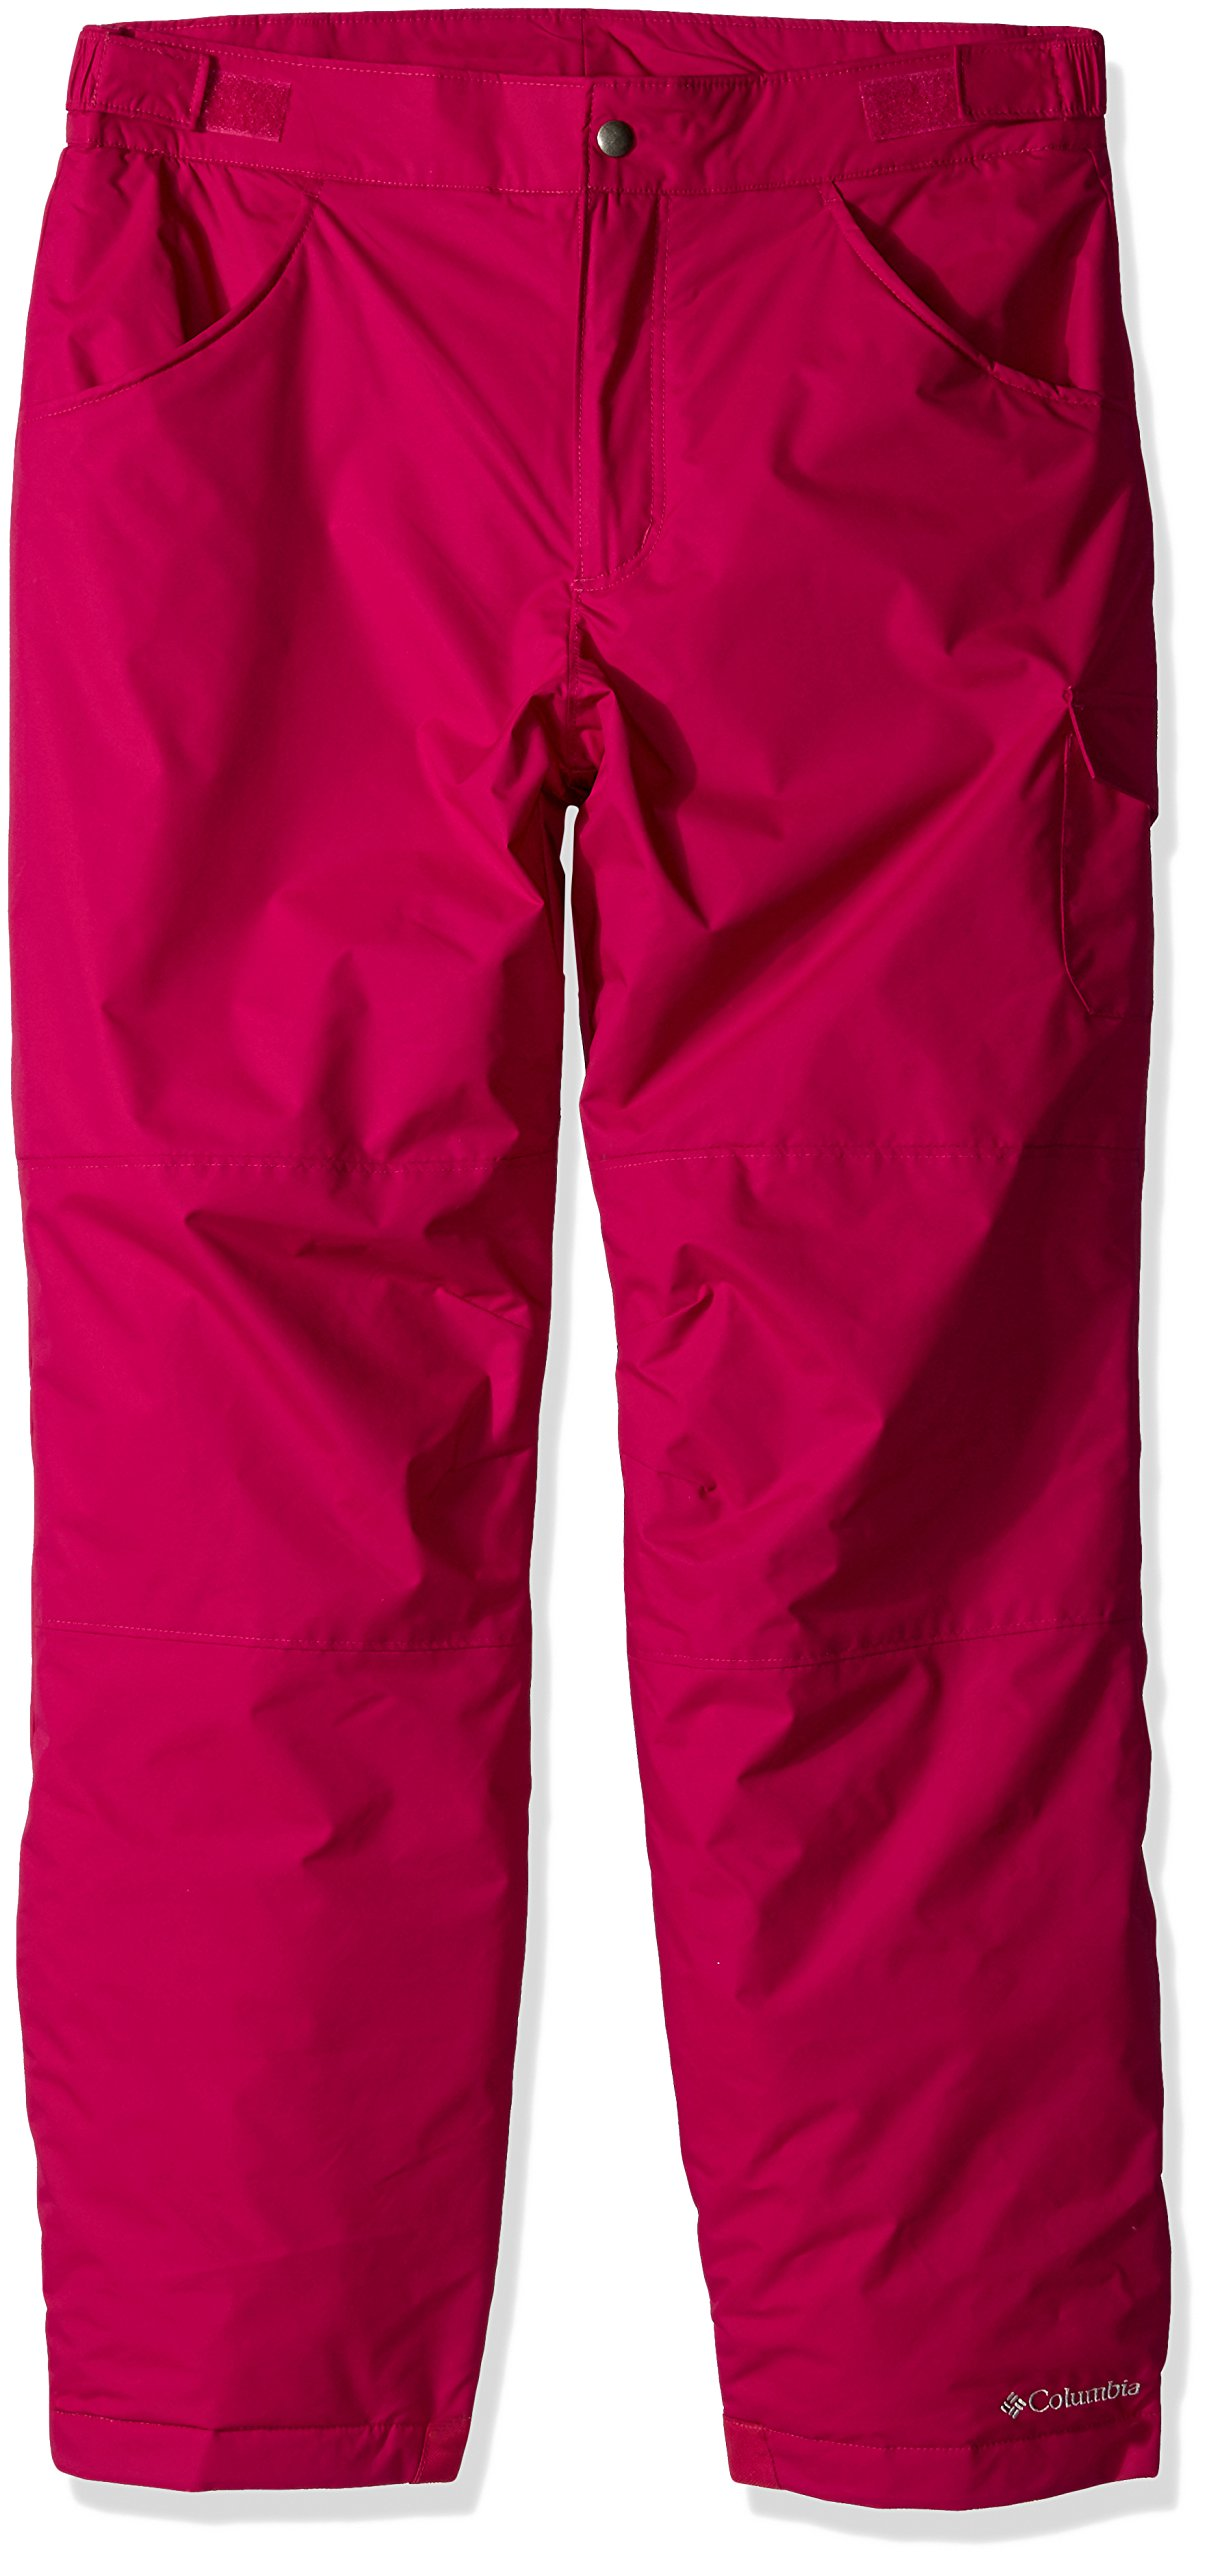 Columbia Big Girls' Starchaser Peak II Pant, Deep Blush, X-Large by Columbia